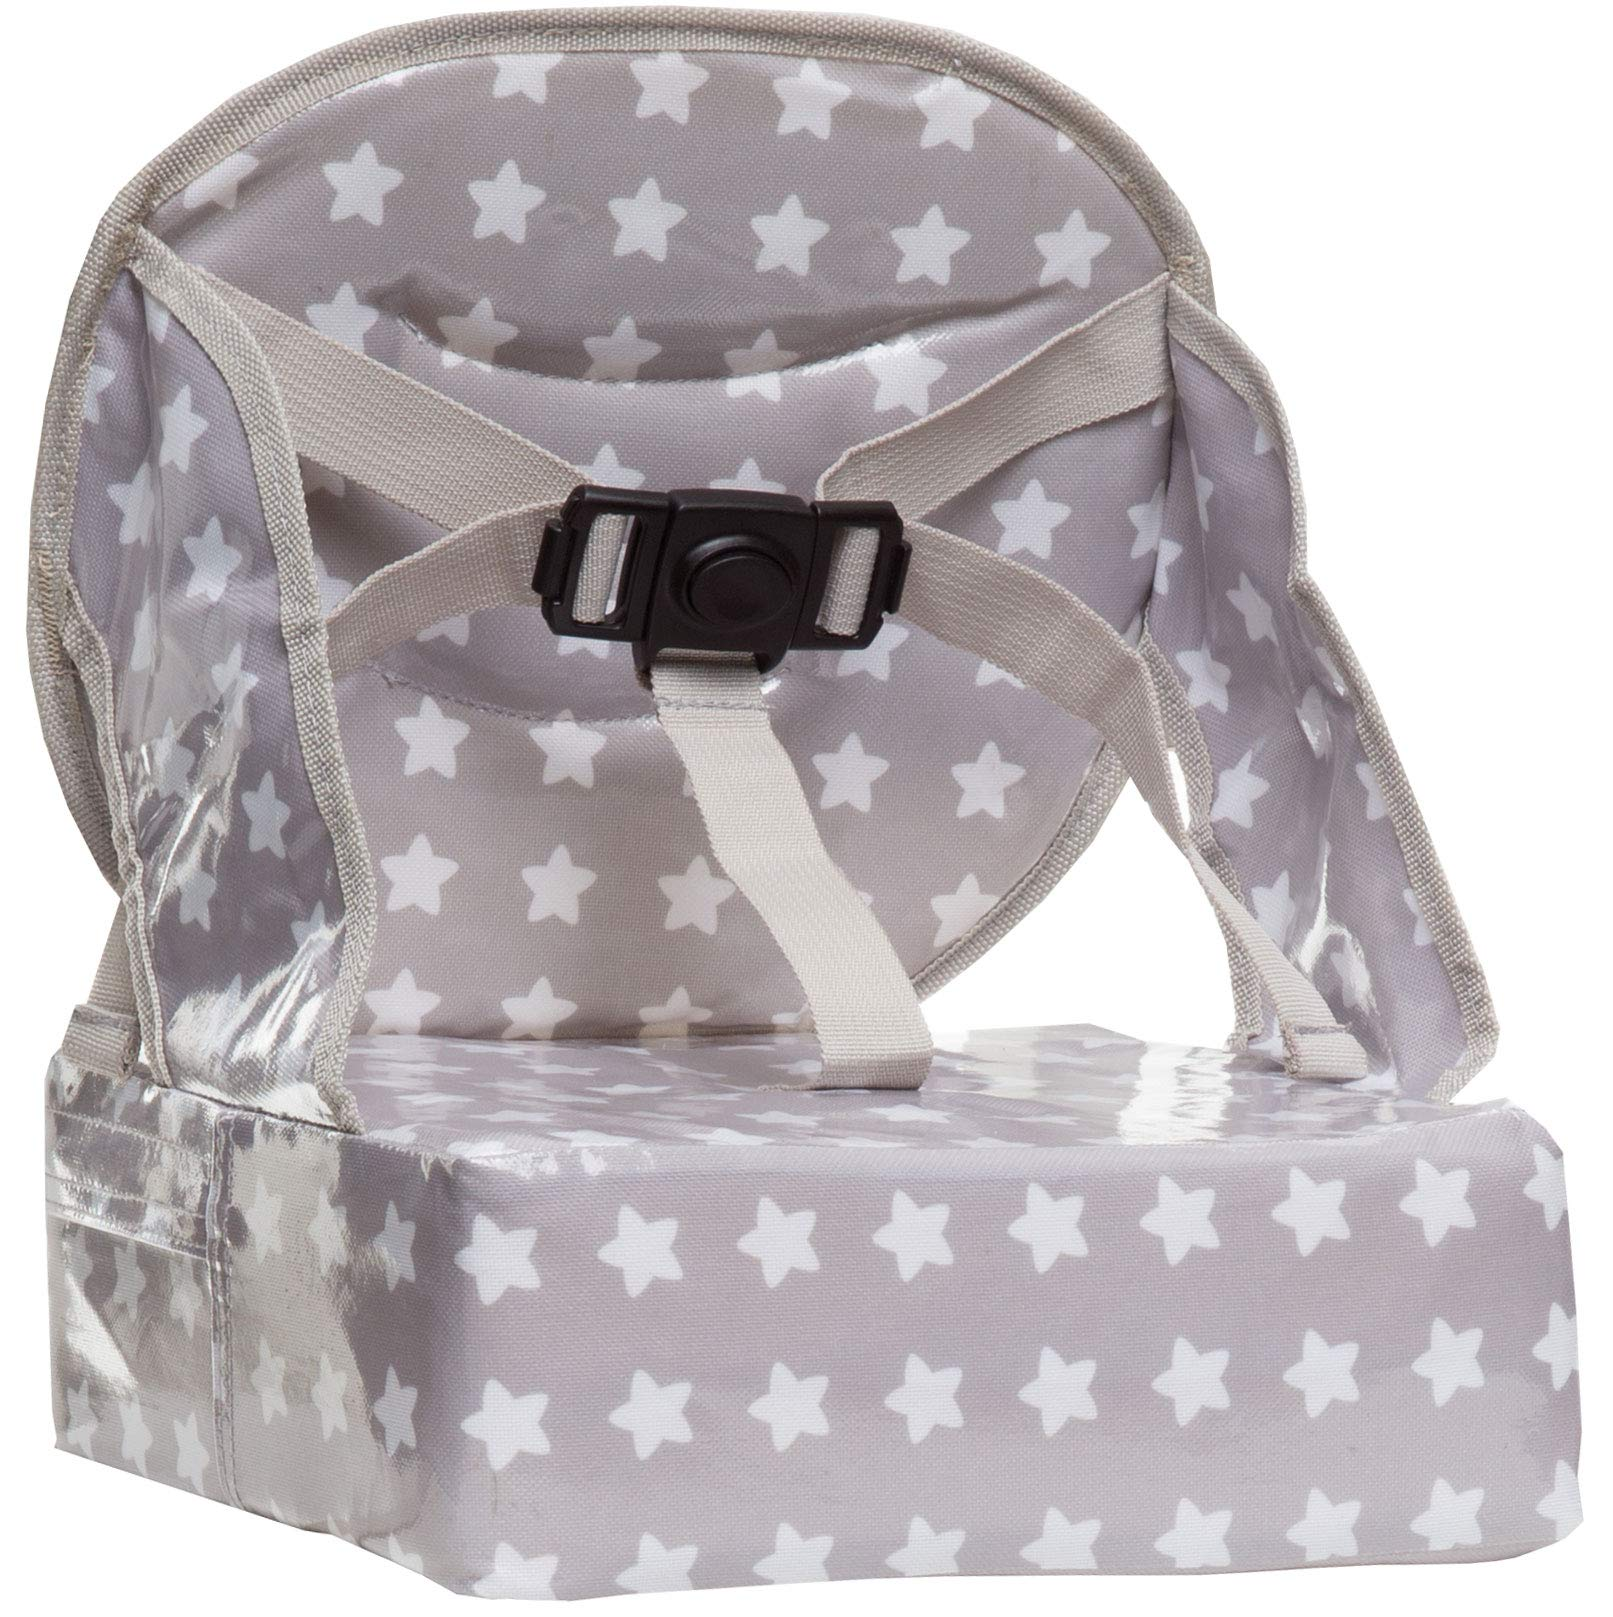 Baby-To-Love Easy Up, Portable Baby Feeding Chair Cushion and Booster Seat for Toddler (White Stars) by BabyToLove